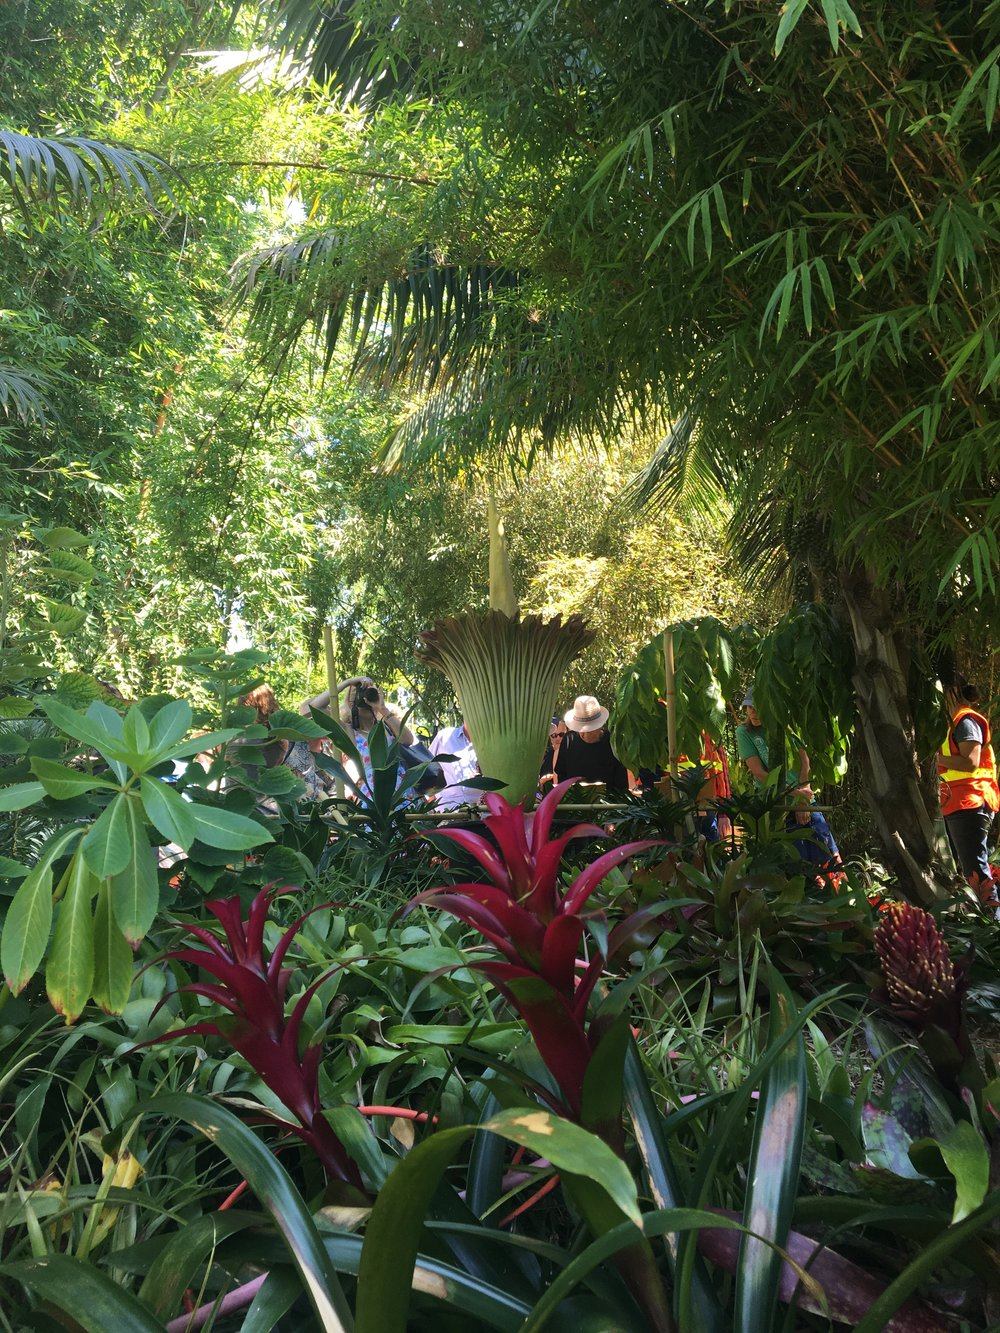 Back View of Corpse Flower with Crowd of Admirers in the Background -San Diego Botanic Garden - Encinitas, California - September 2017